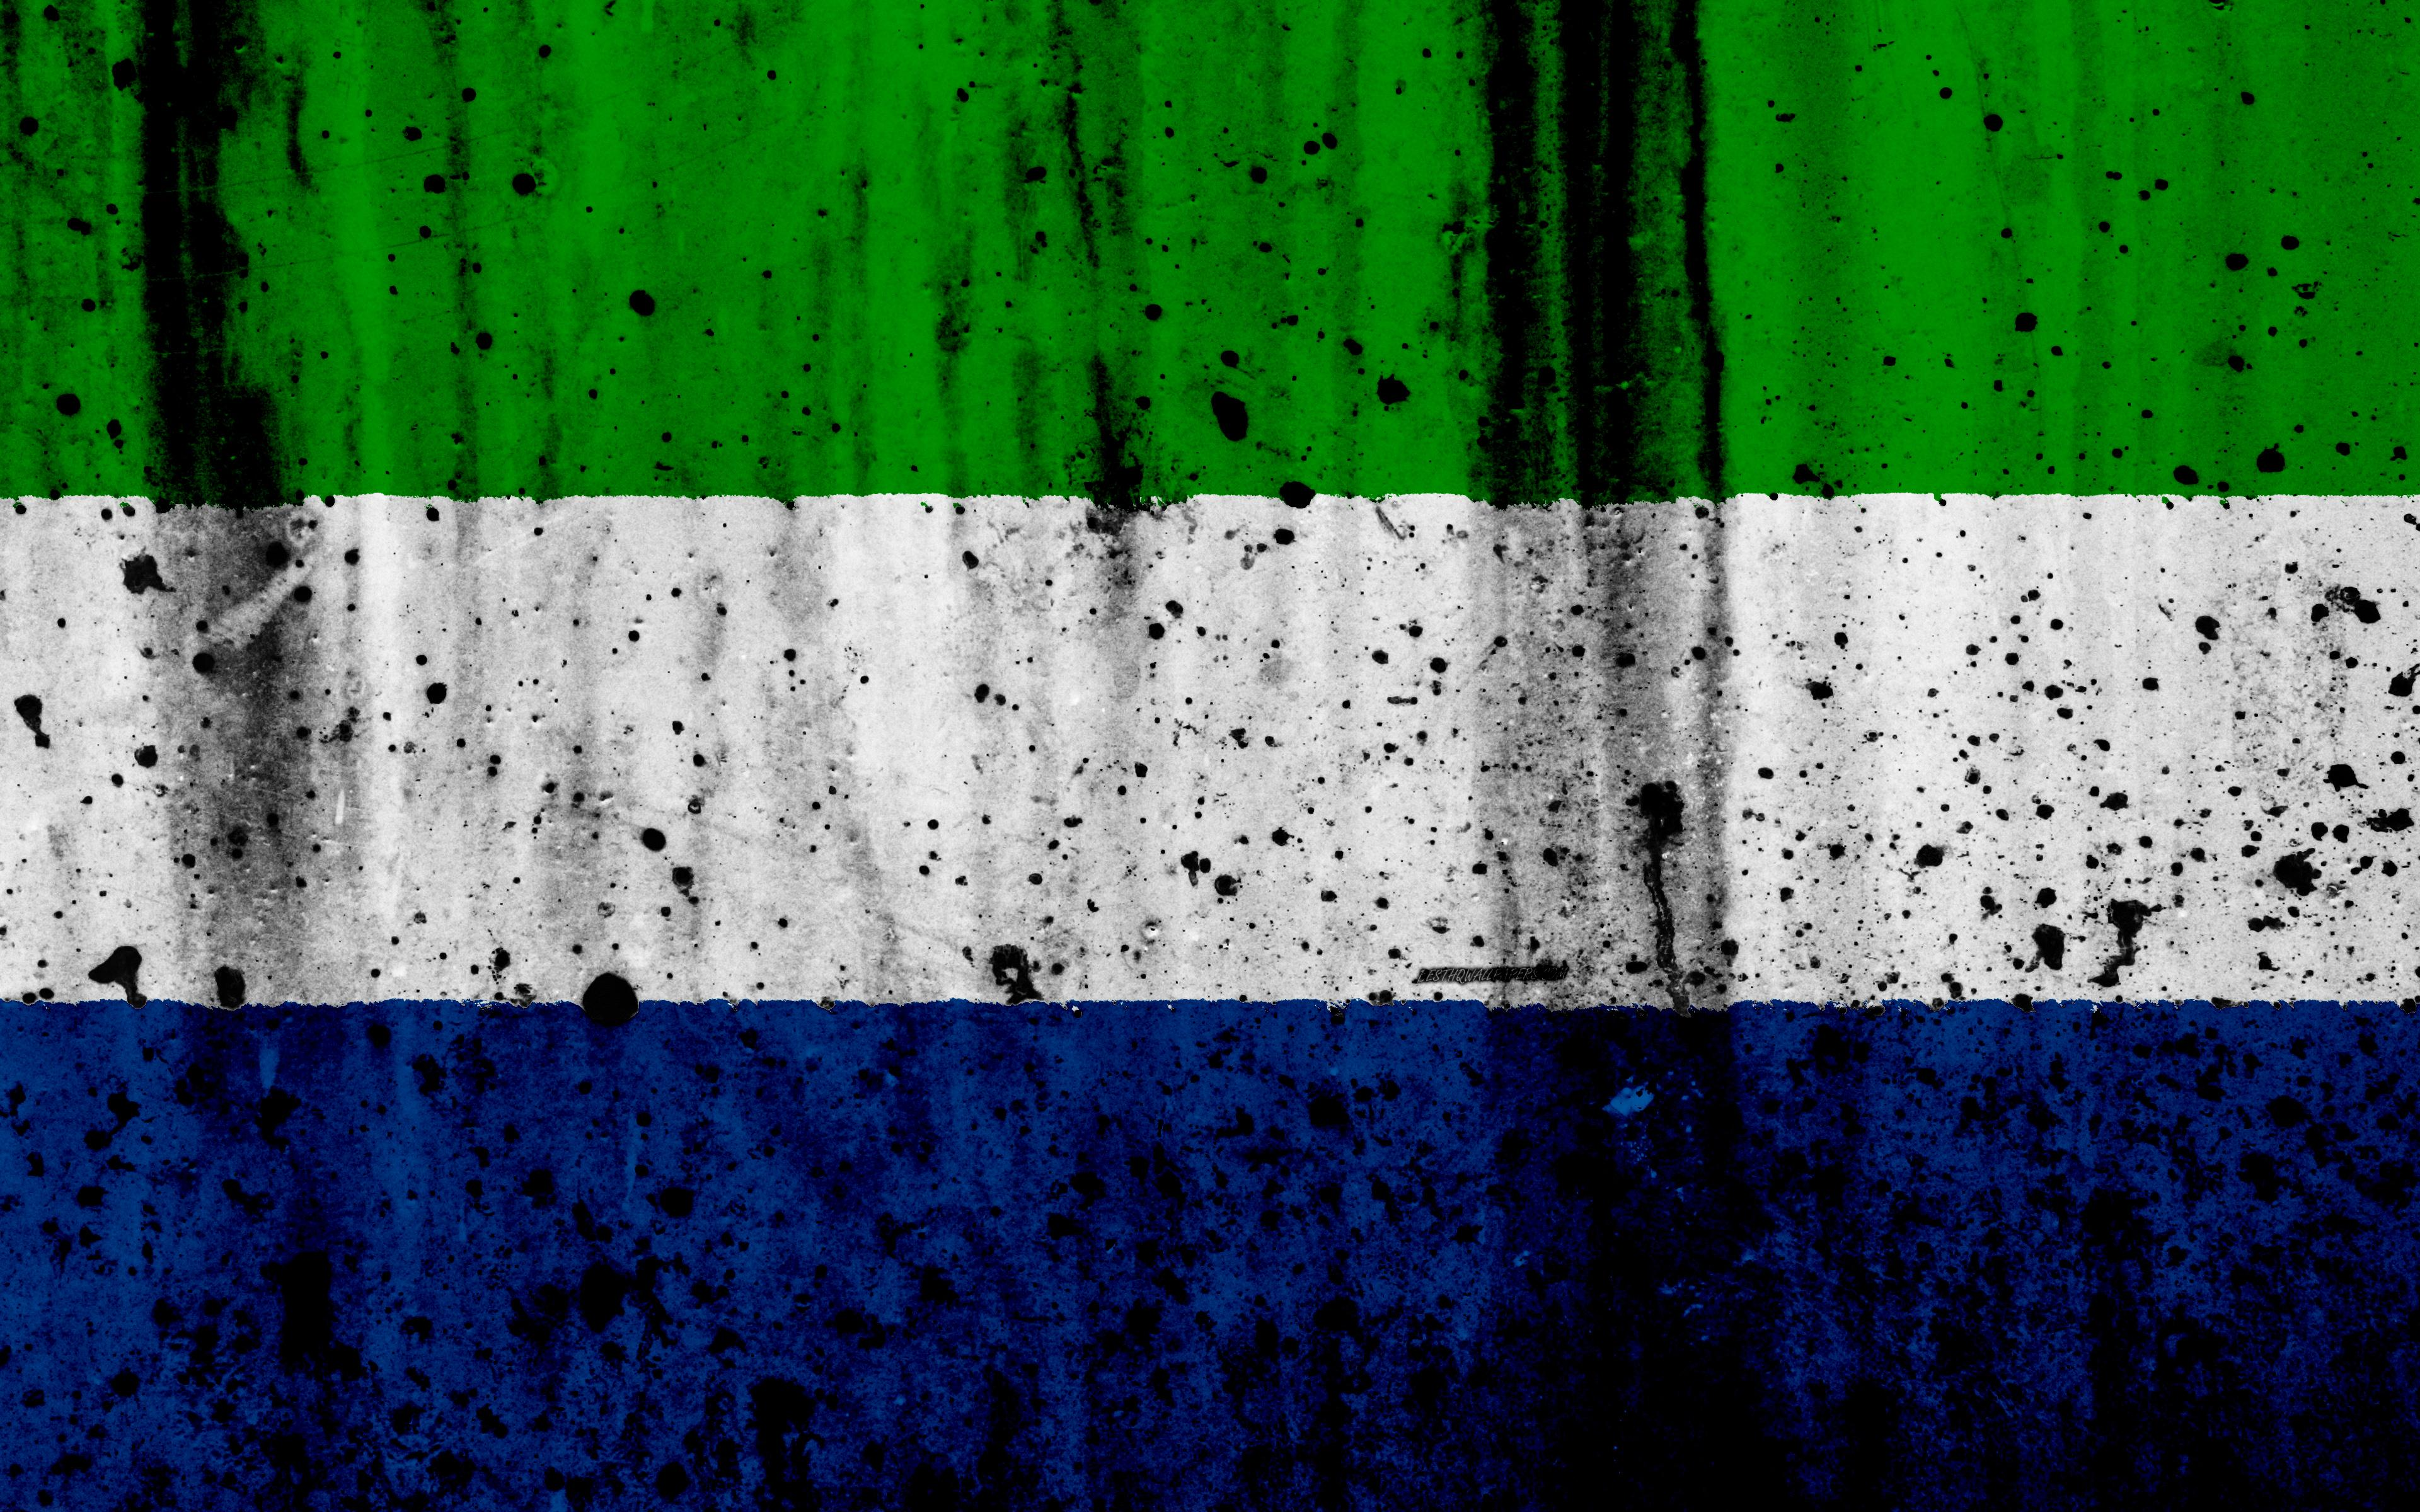 Download wallpapers Sierra Leone flag, 4k, grunge, flag of Sierra ...